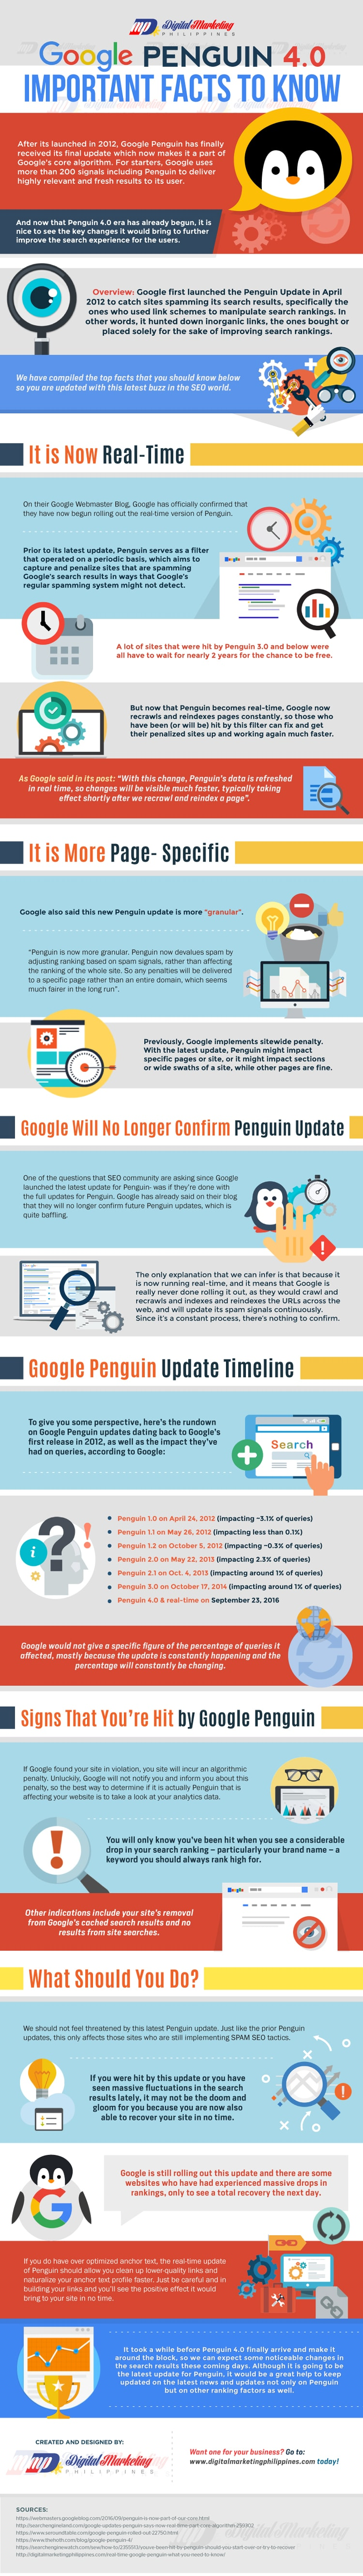 Google Penguin 4.0 – Important Facts to Know [Infographic]